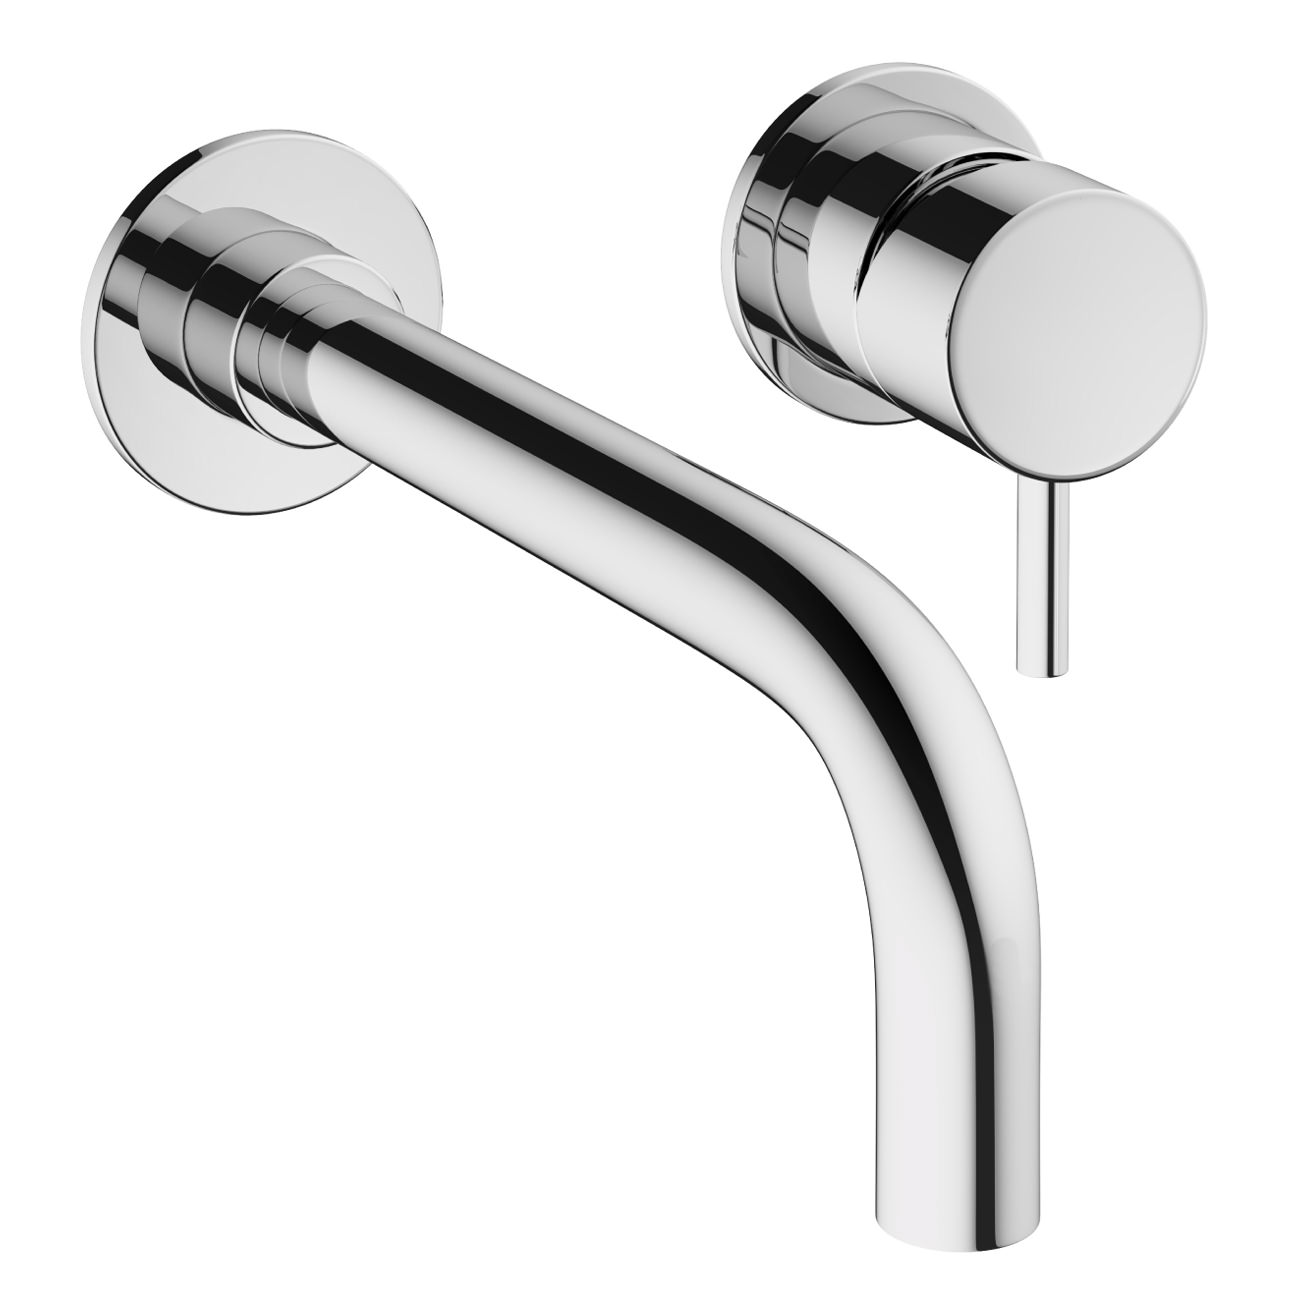 Crosswater Mike Pro Wall Mounted Chrome 2 Hole Basin Mixer Tap